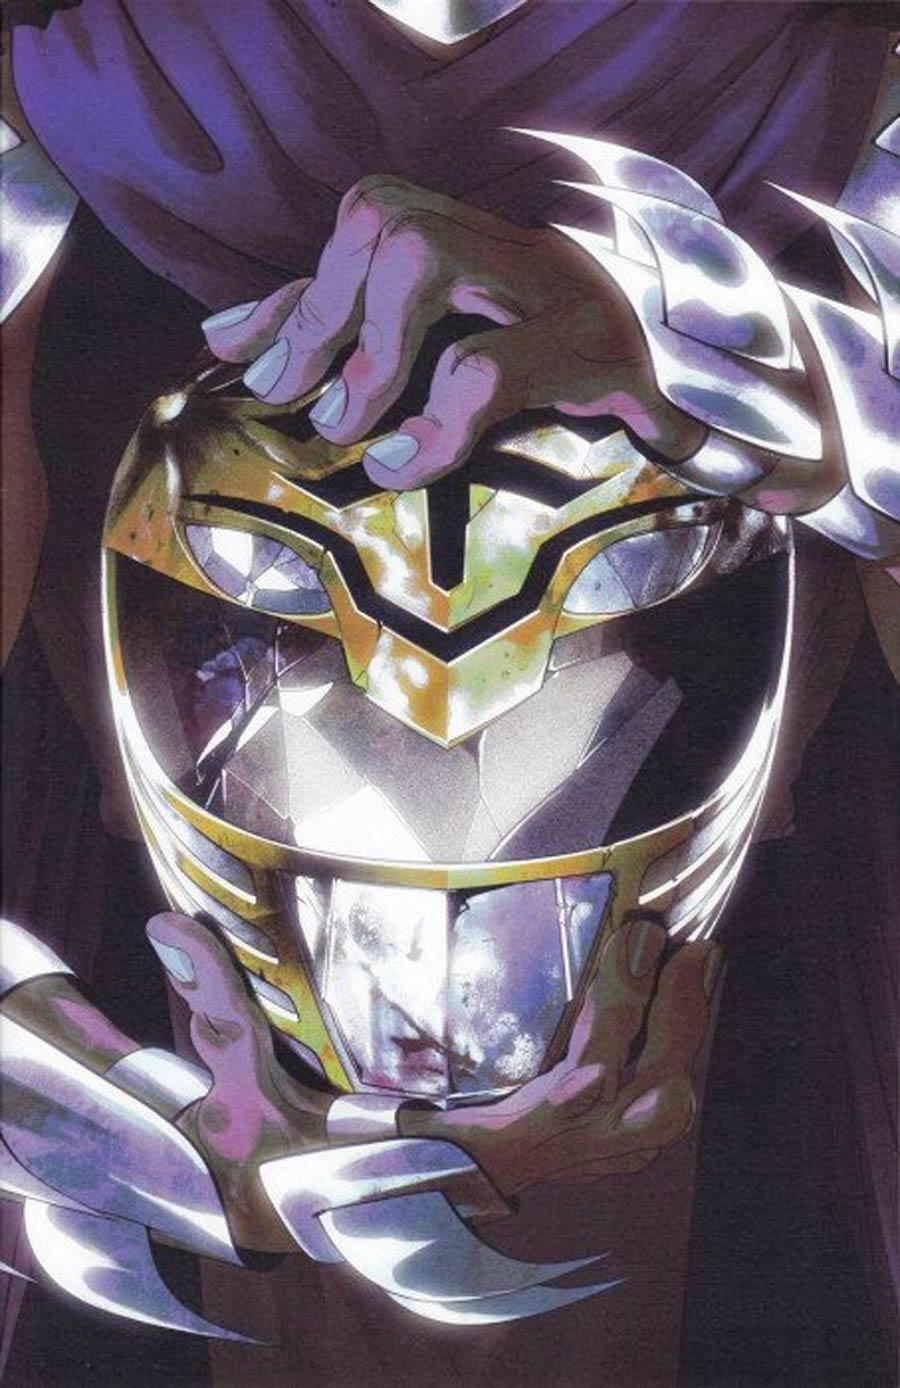 Mighty Morphin Power Rangers Teenage Mutant Ninja Turtles #1 Cover I 1st Ptg Incentive Thank You Variant Cover